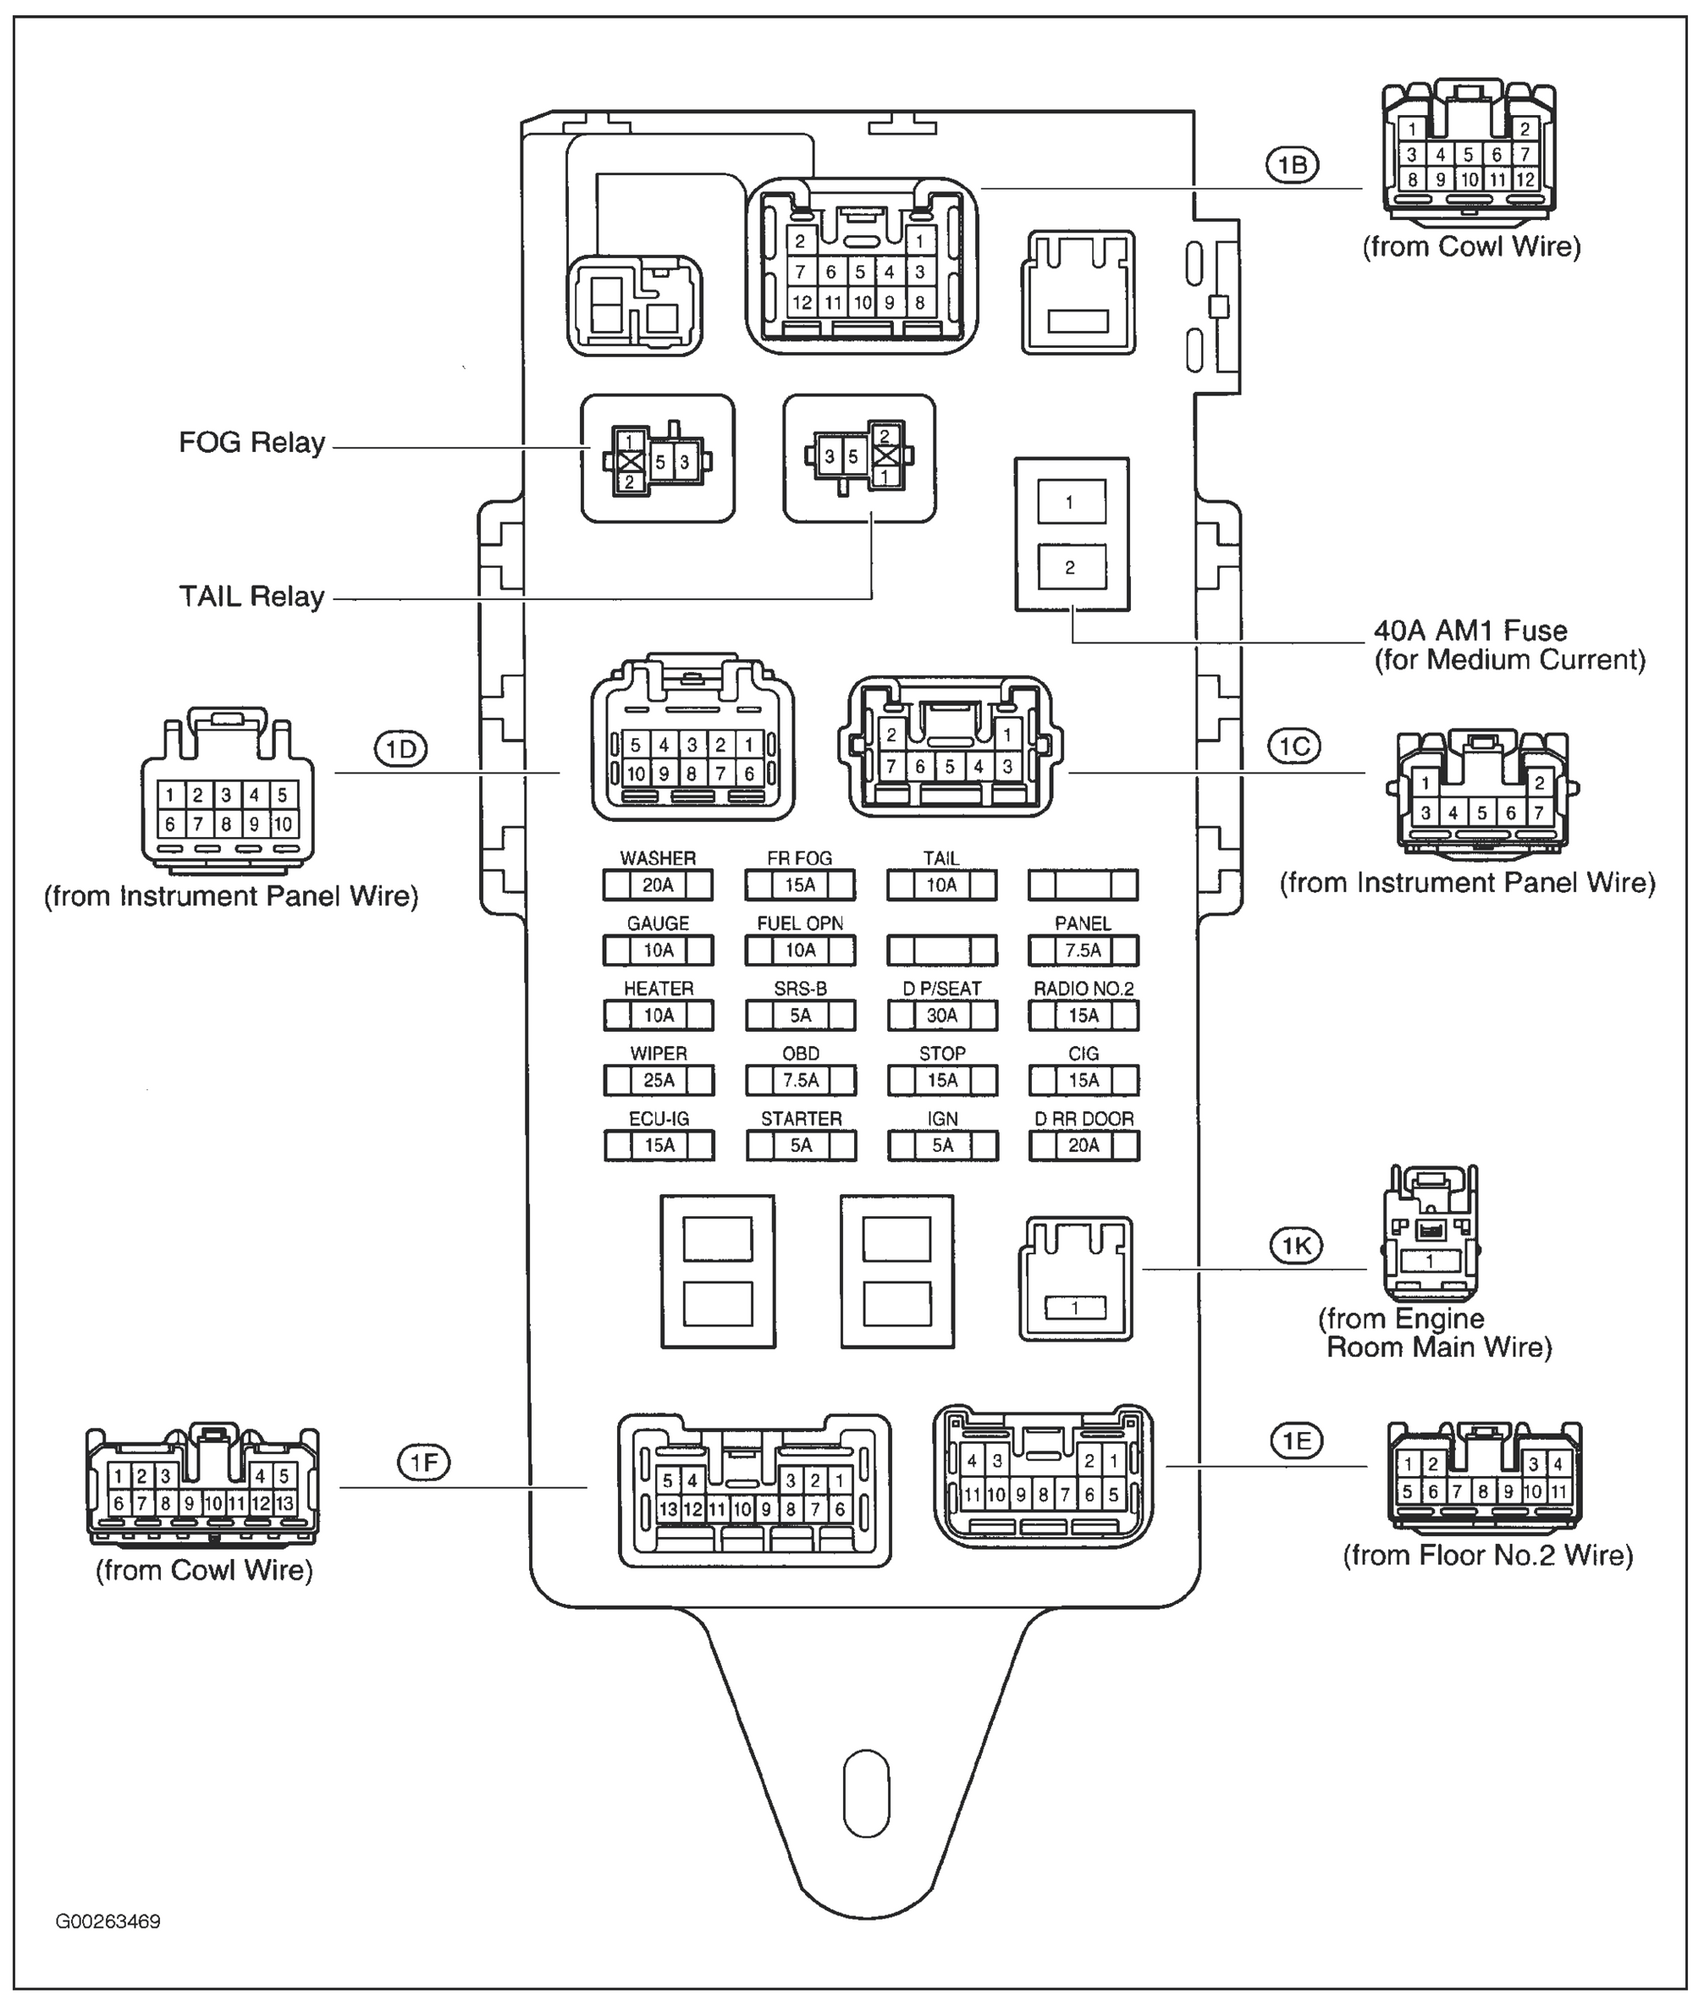 1999 lexus gs 300 fuse box wiring diagram pictures u2022 rh mapavick co uk  2007 Lexus